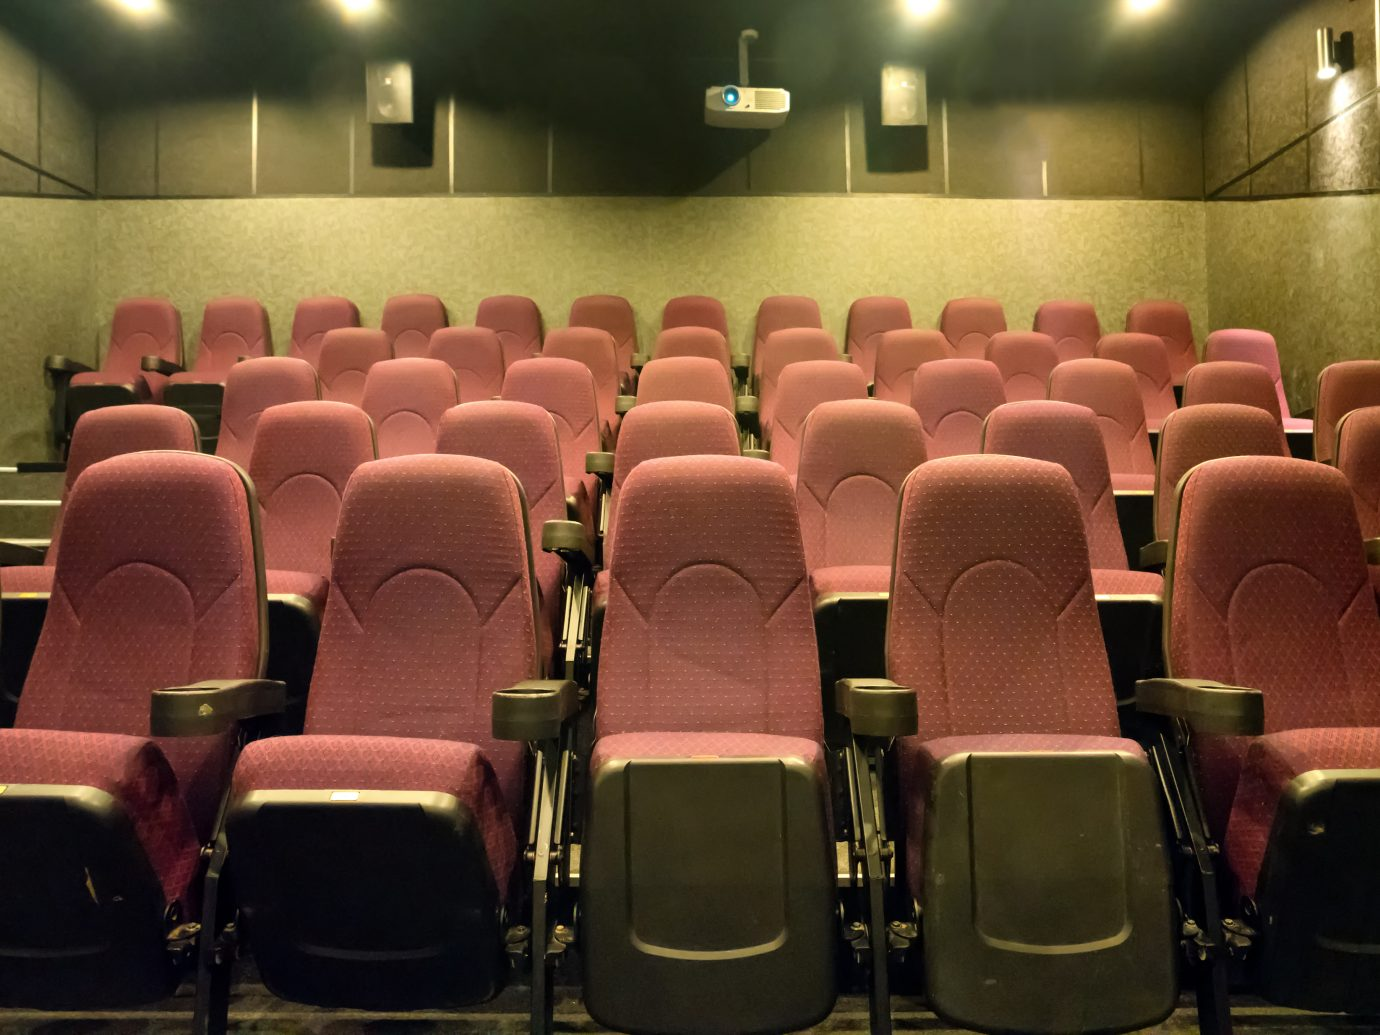 Empty seats in the small movie theater